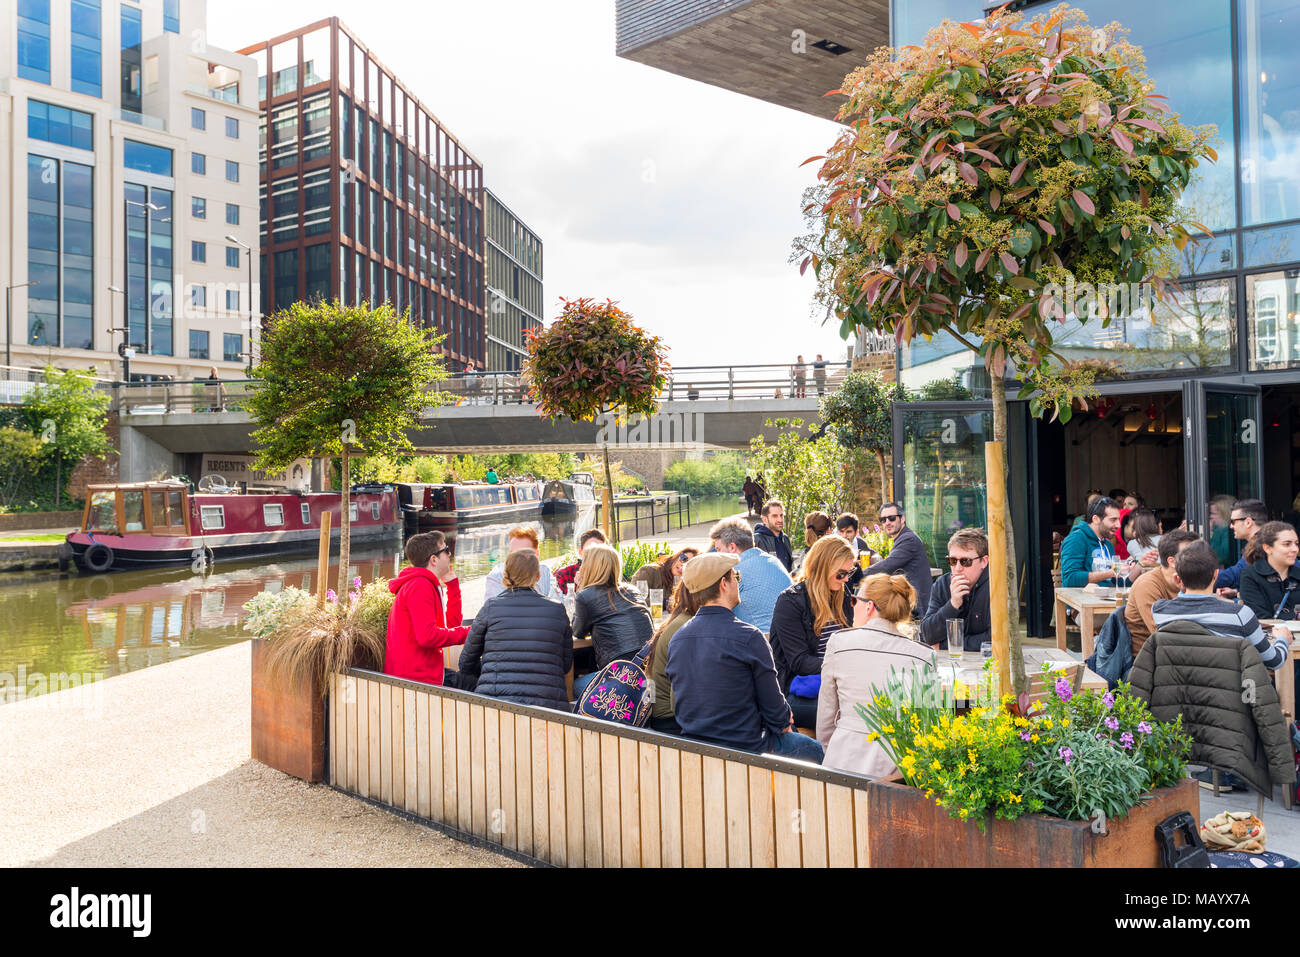 The Lighterman pub besides the Regent's Canal, Granary Square, King's Cross, London, UK - Stock Image